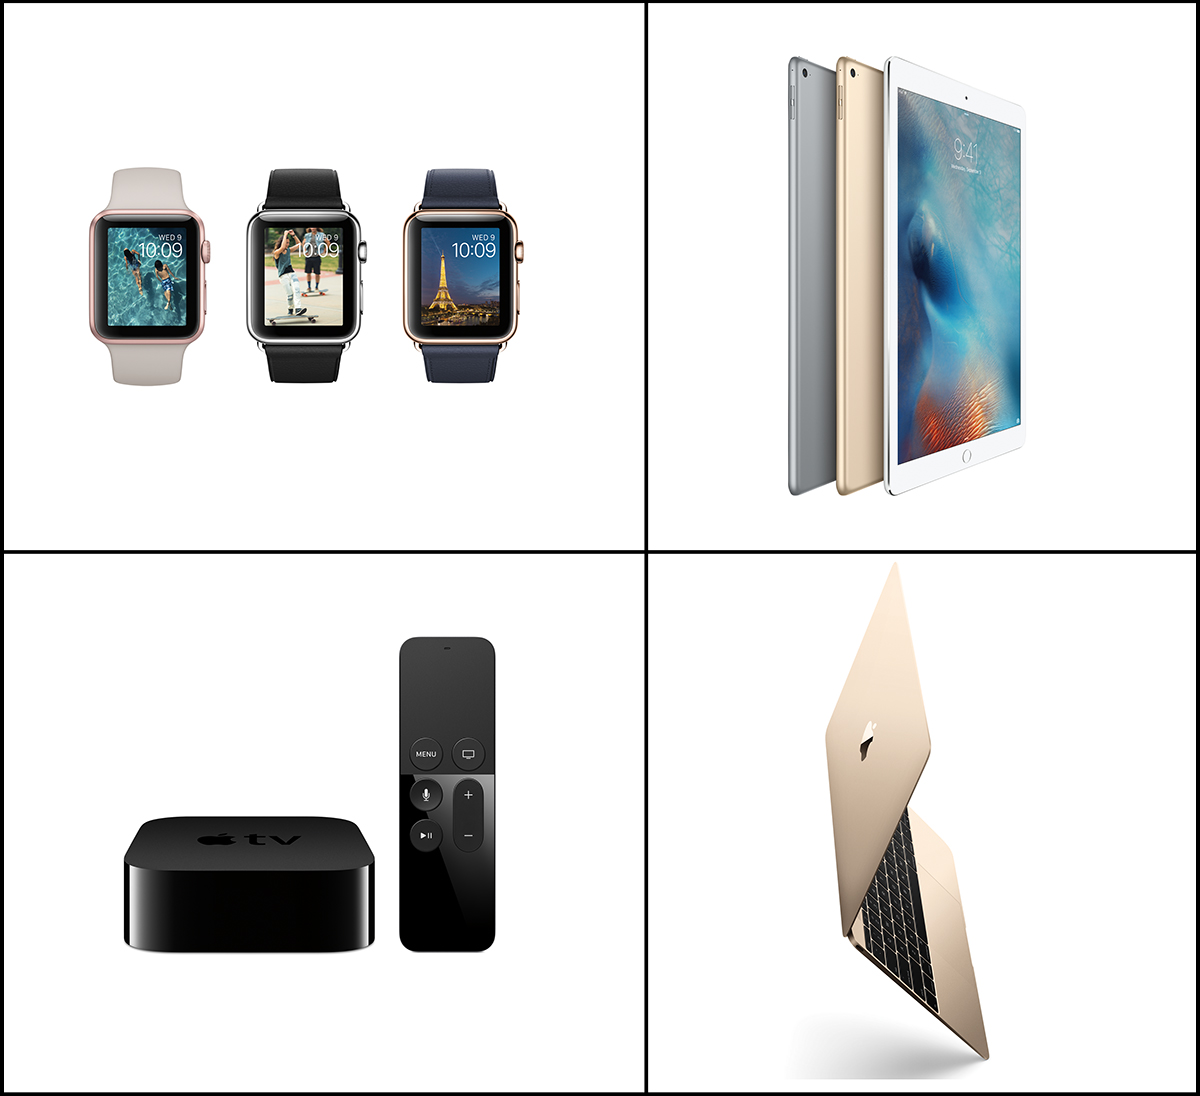 Apple Watch, iPad Pro, Apple TV, MacBook